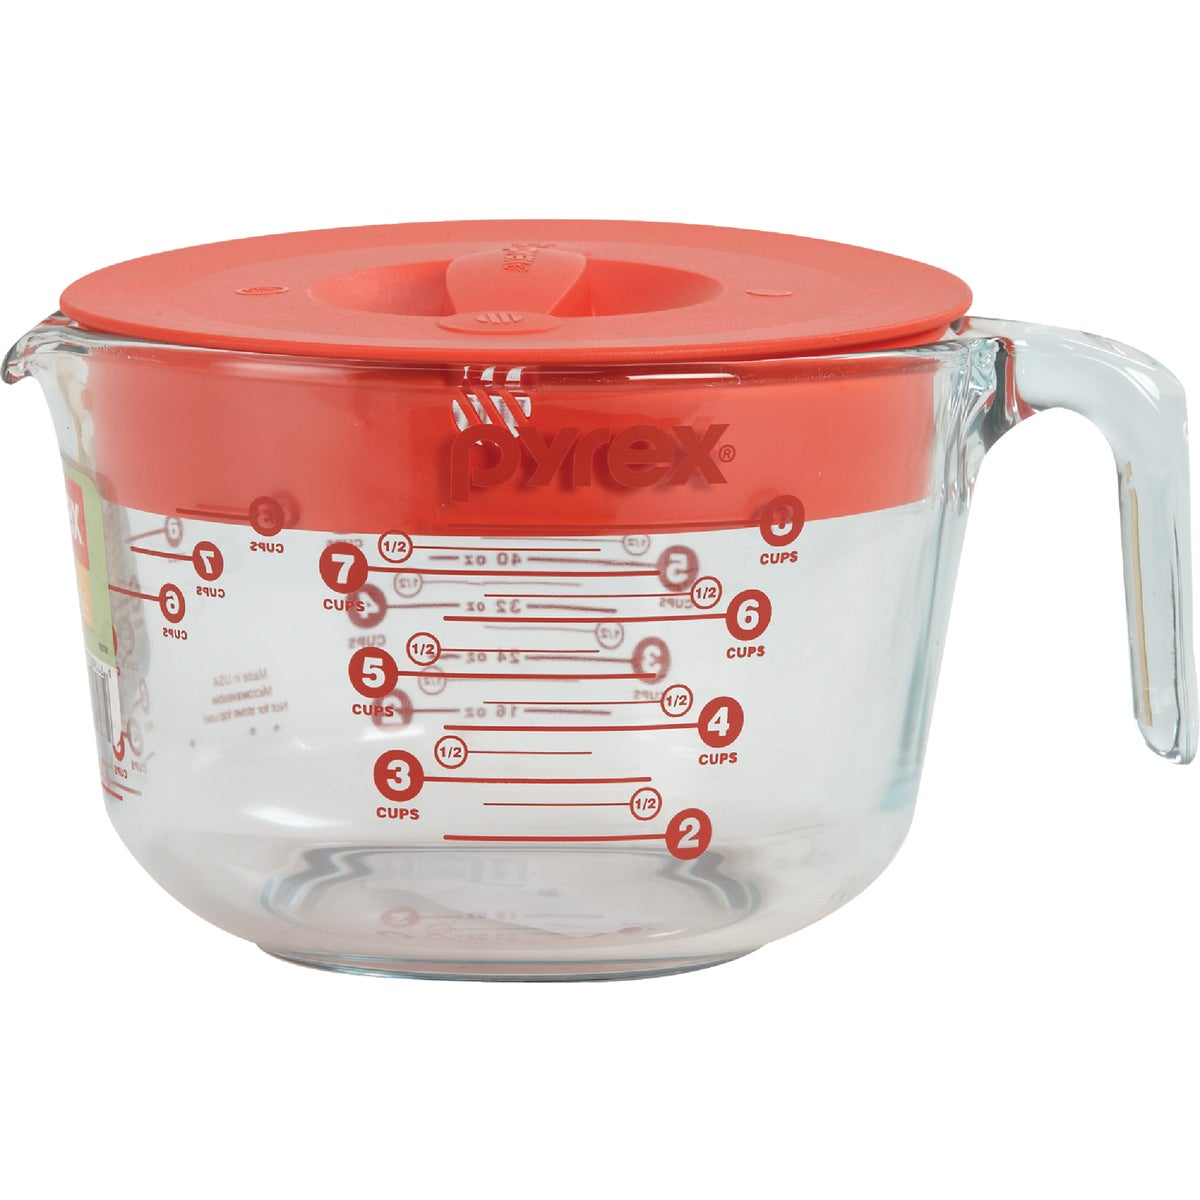 8CUP MEASURING CUP